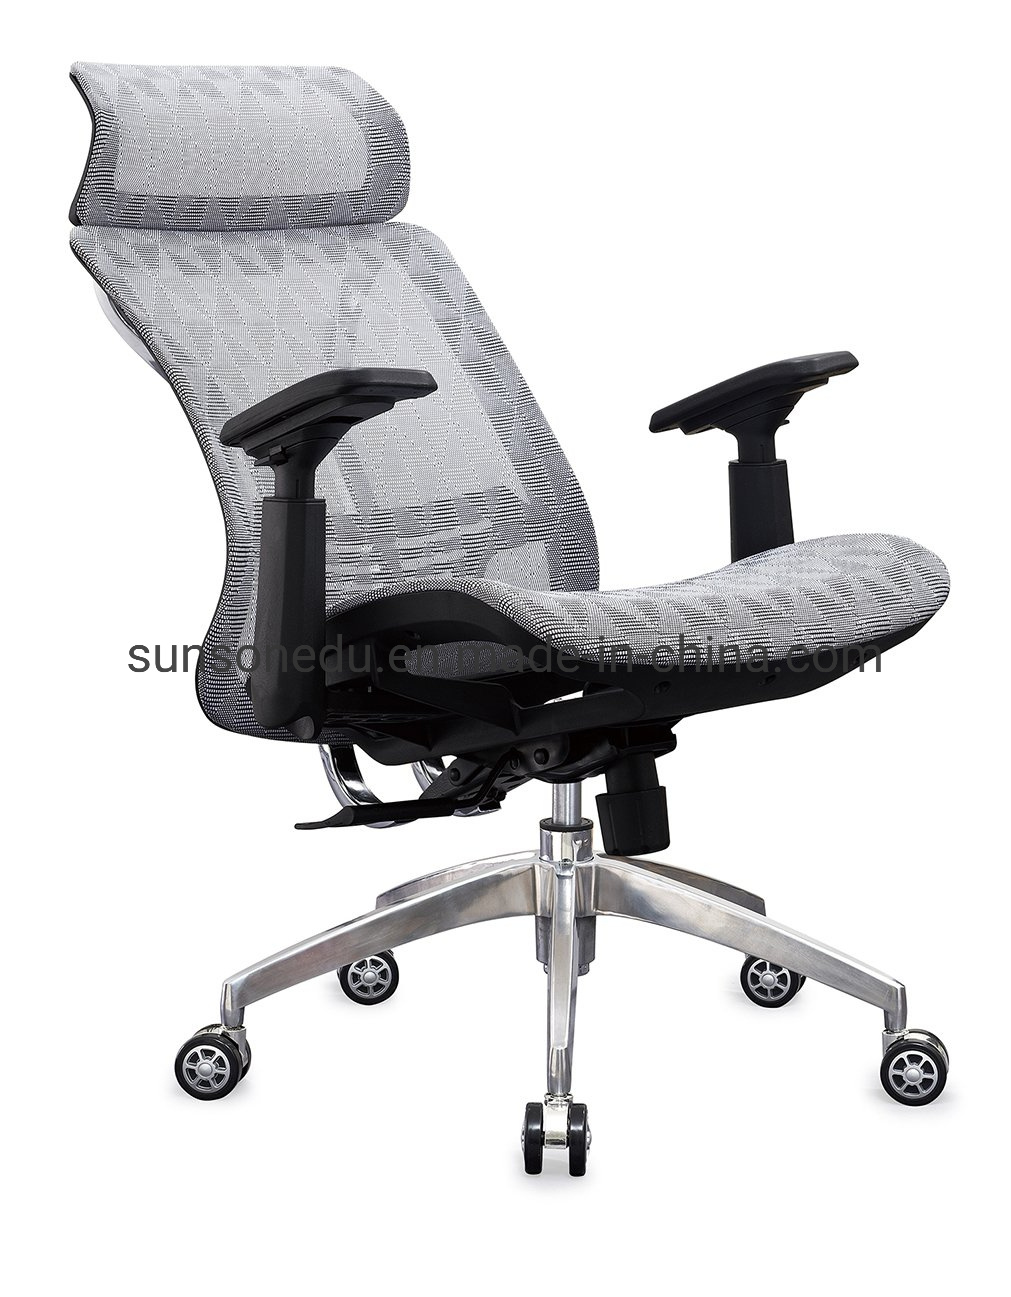 Hot Item High End Ergonomic Full Mesh Patented Manager Office Chair